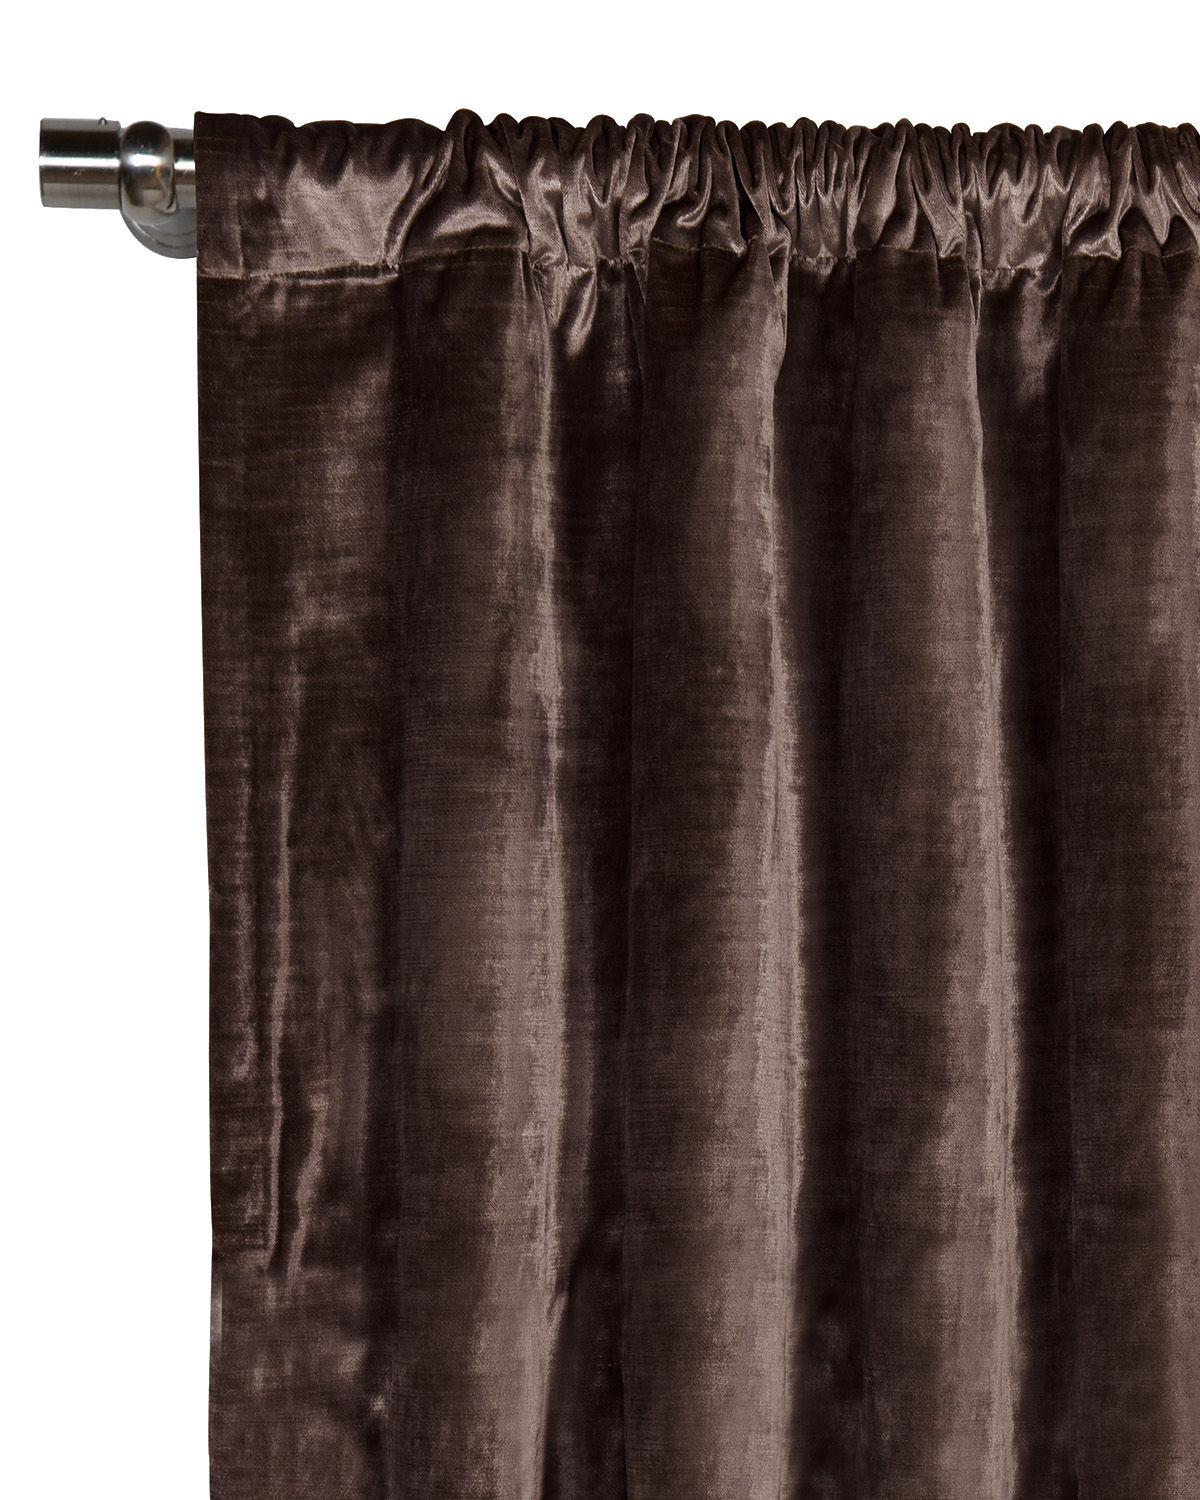 'Eastern Accents Winchester Rod Curtain Panel, 96